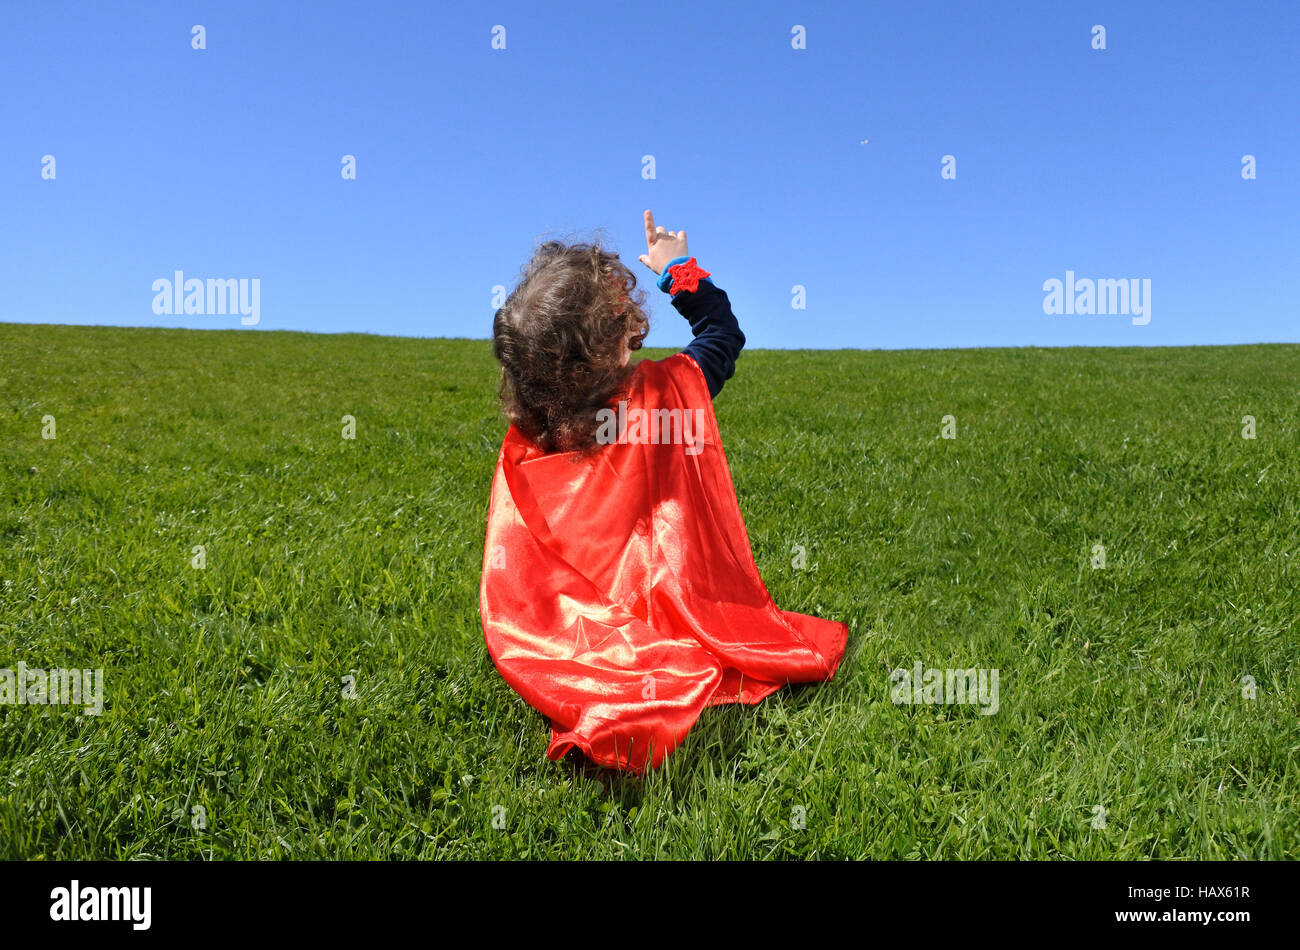 Superhero toddler points towards dramatic blue sky background with copy space. concept photo of Super hero, girl - Stock Image